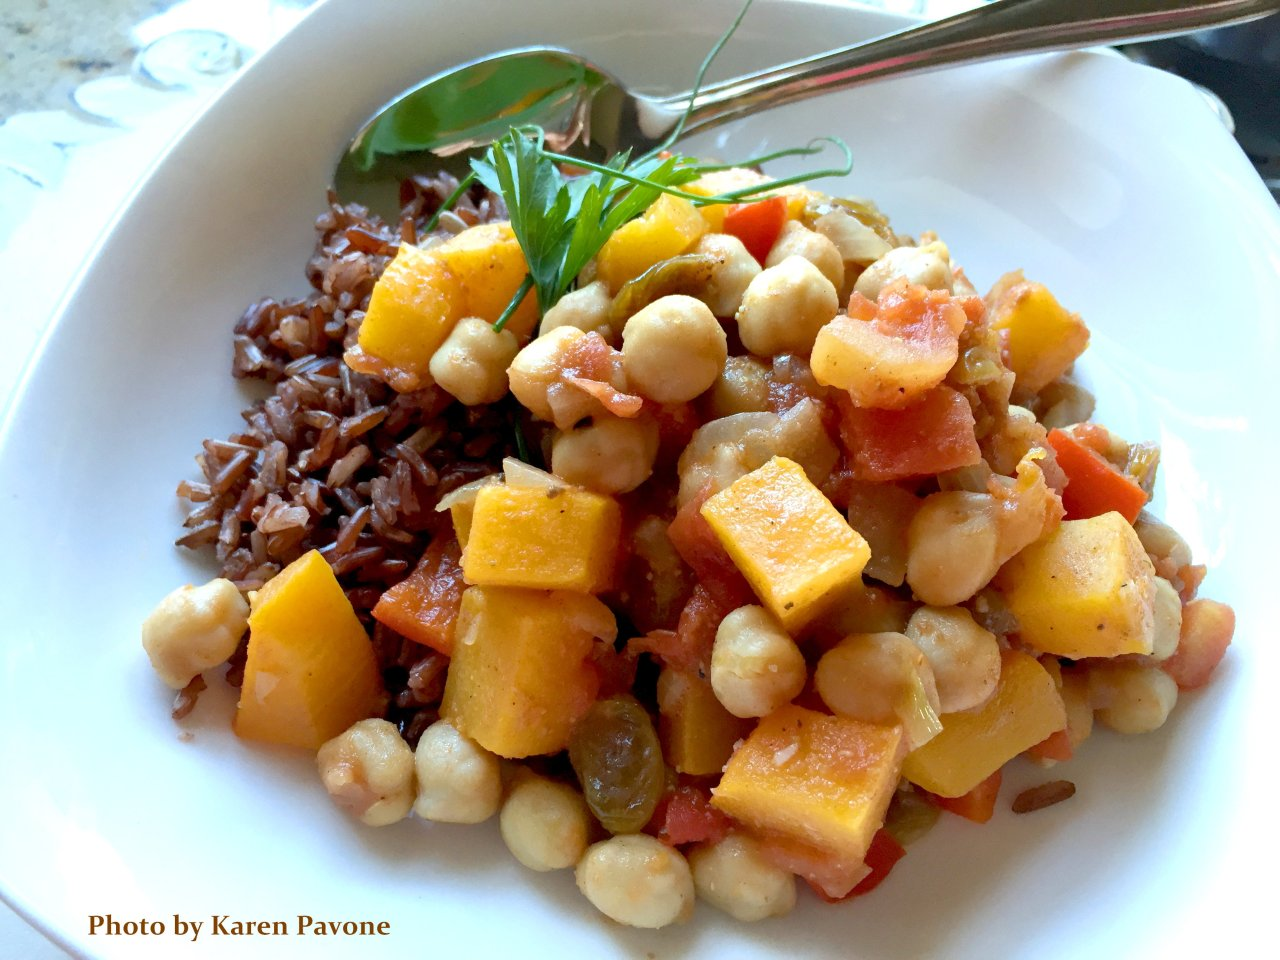 IN SEASON: Roasted Butternut Squash Stew with MoroccanSpices